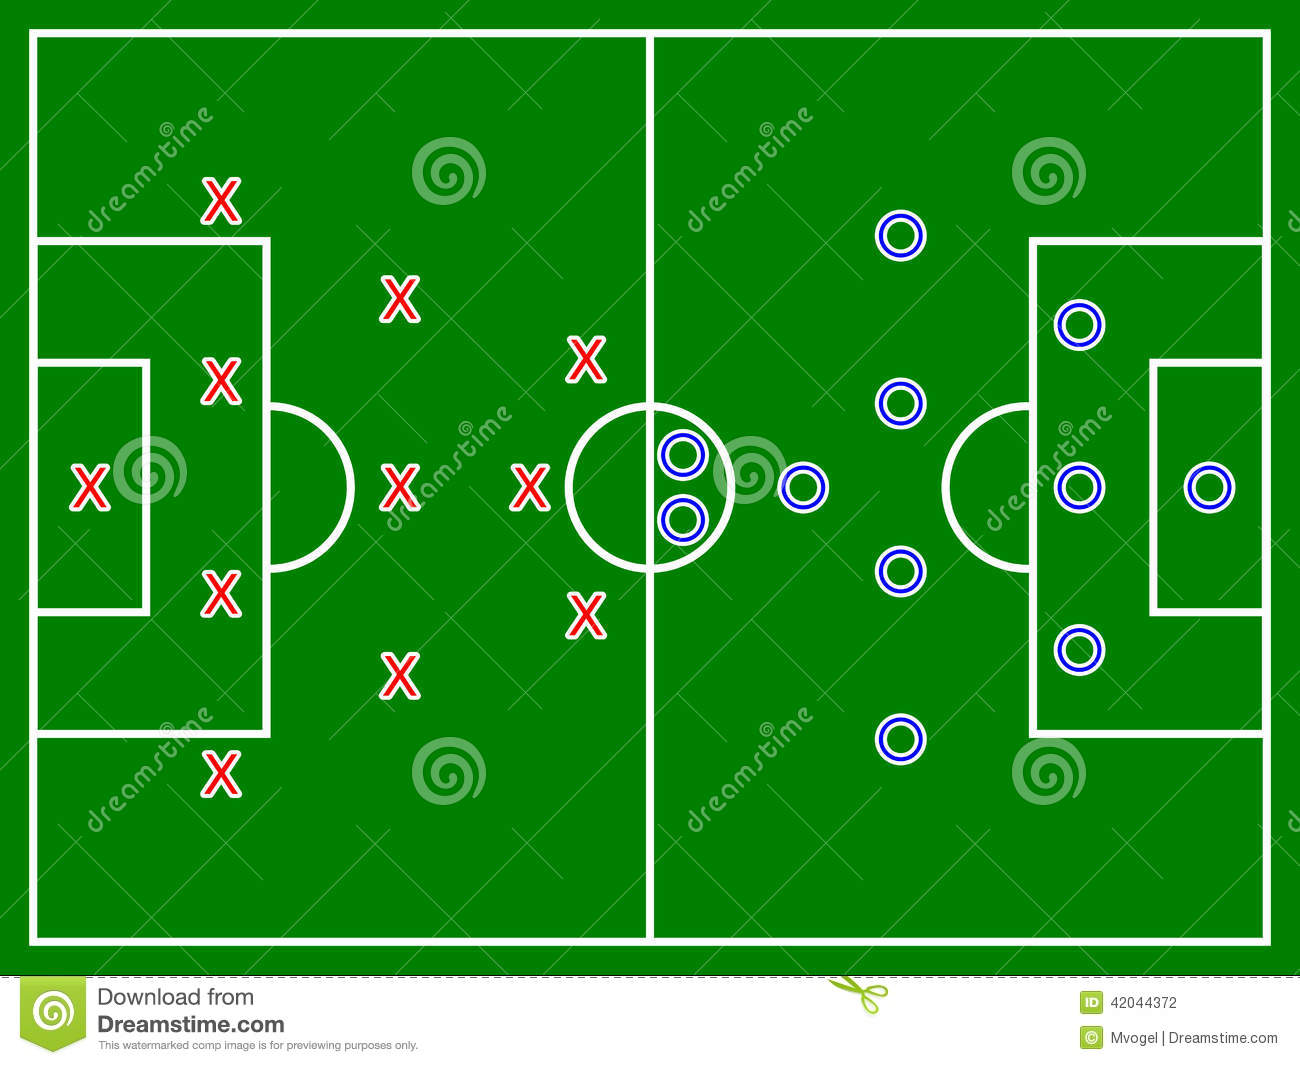 football field diagram printable comelit wiring elit diagrams friendship bracelet soccer free engine image for user